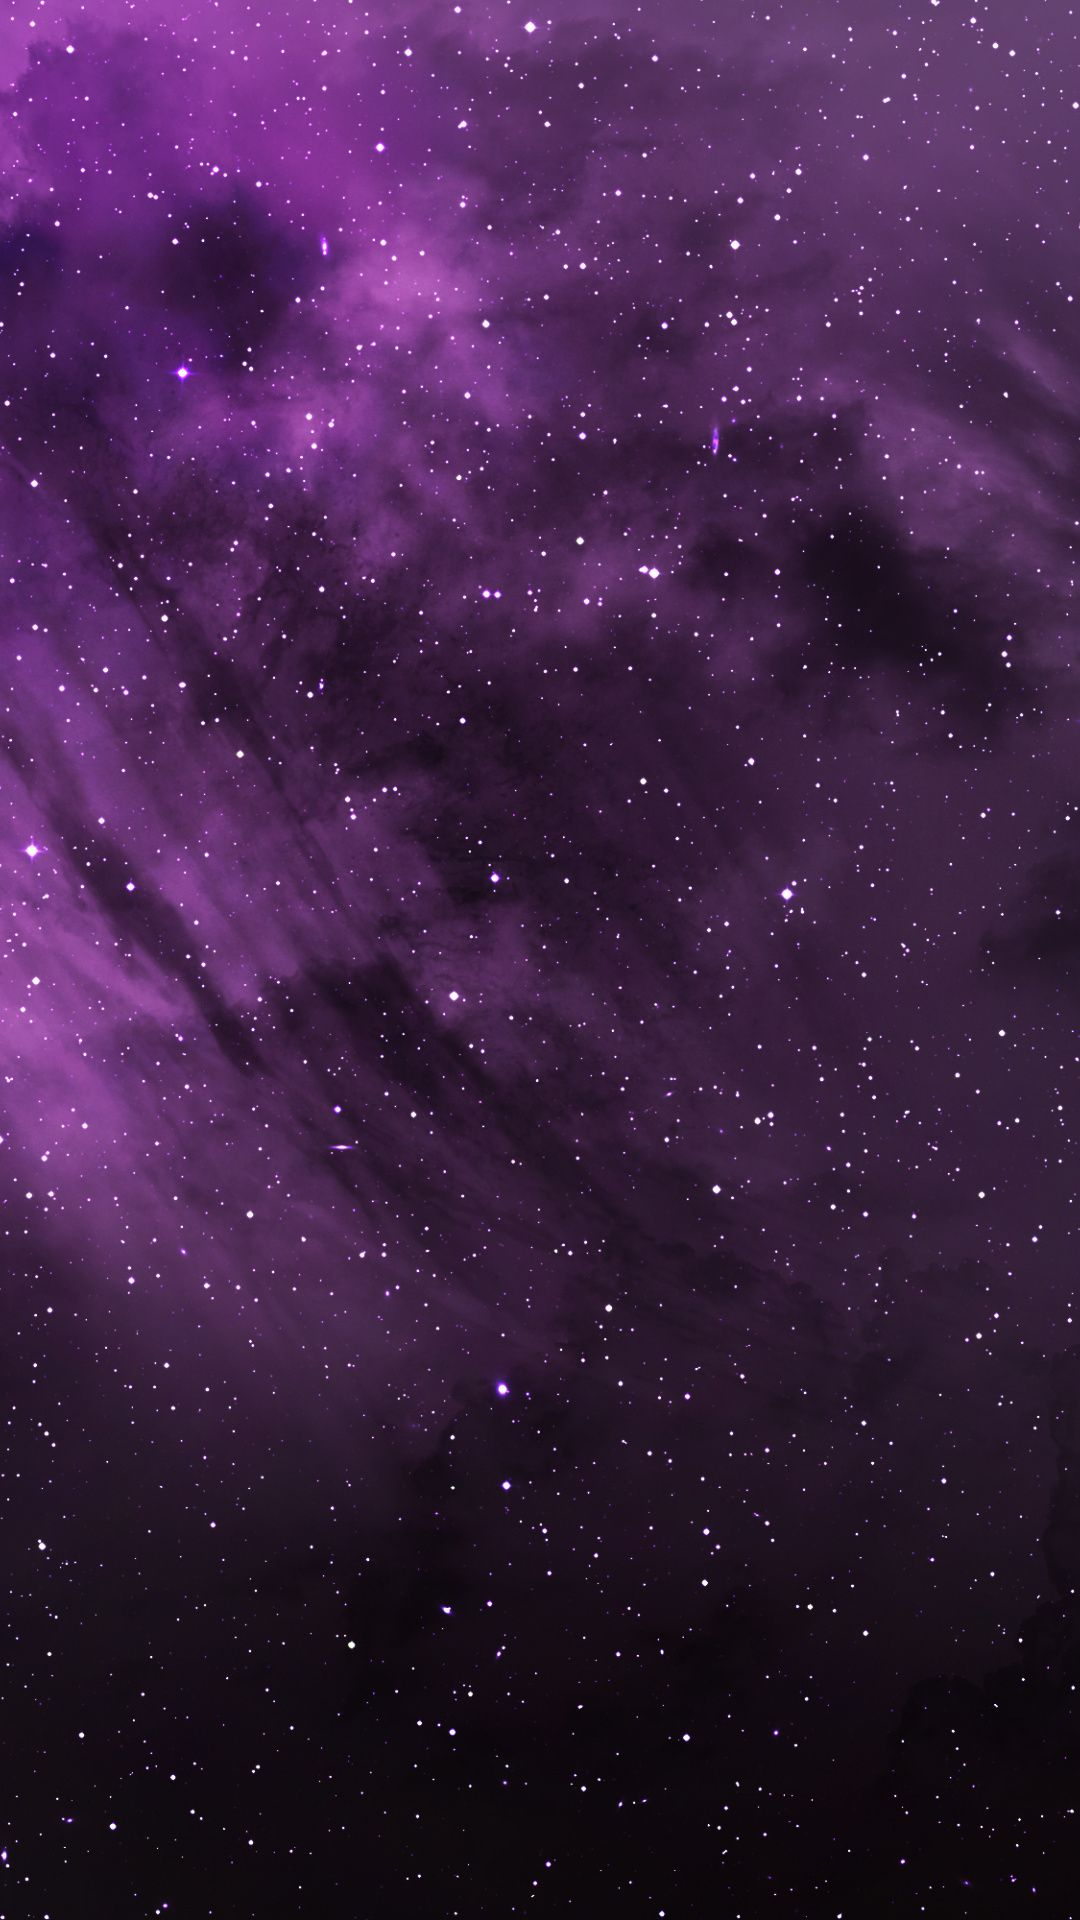 1080x1920 Purple Clouds Cosmos Stars Space Wallpaper Space Phone Wallpaper Purple Galaxy Wallpaper Dark Purple Wallpaper